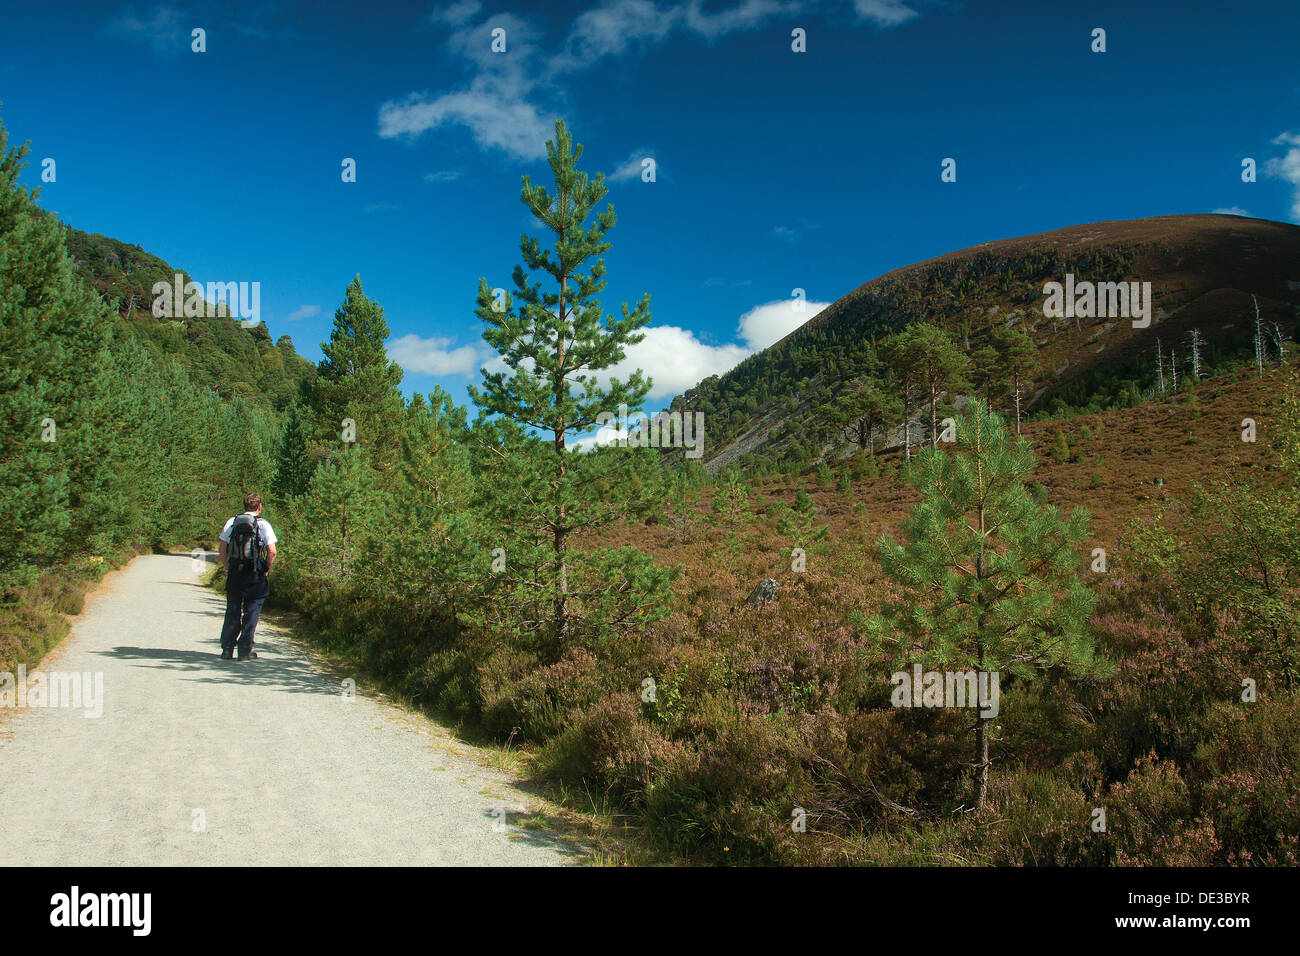 Creag nan Gall from The Thieves Road, The Cateran's Trail, Glen More, Cairngorm National Park - Stock Image